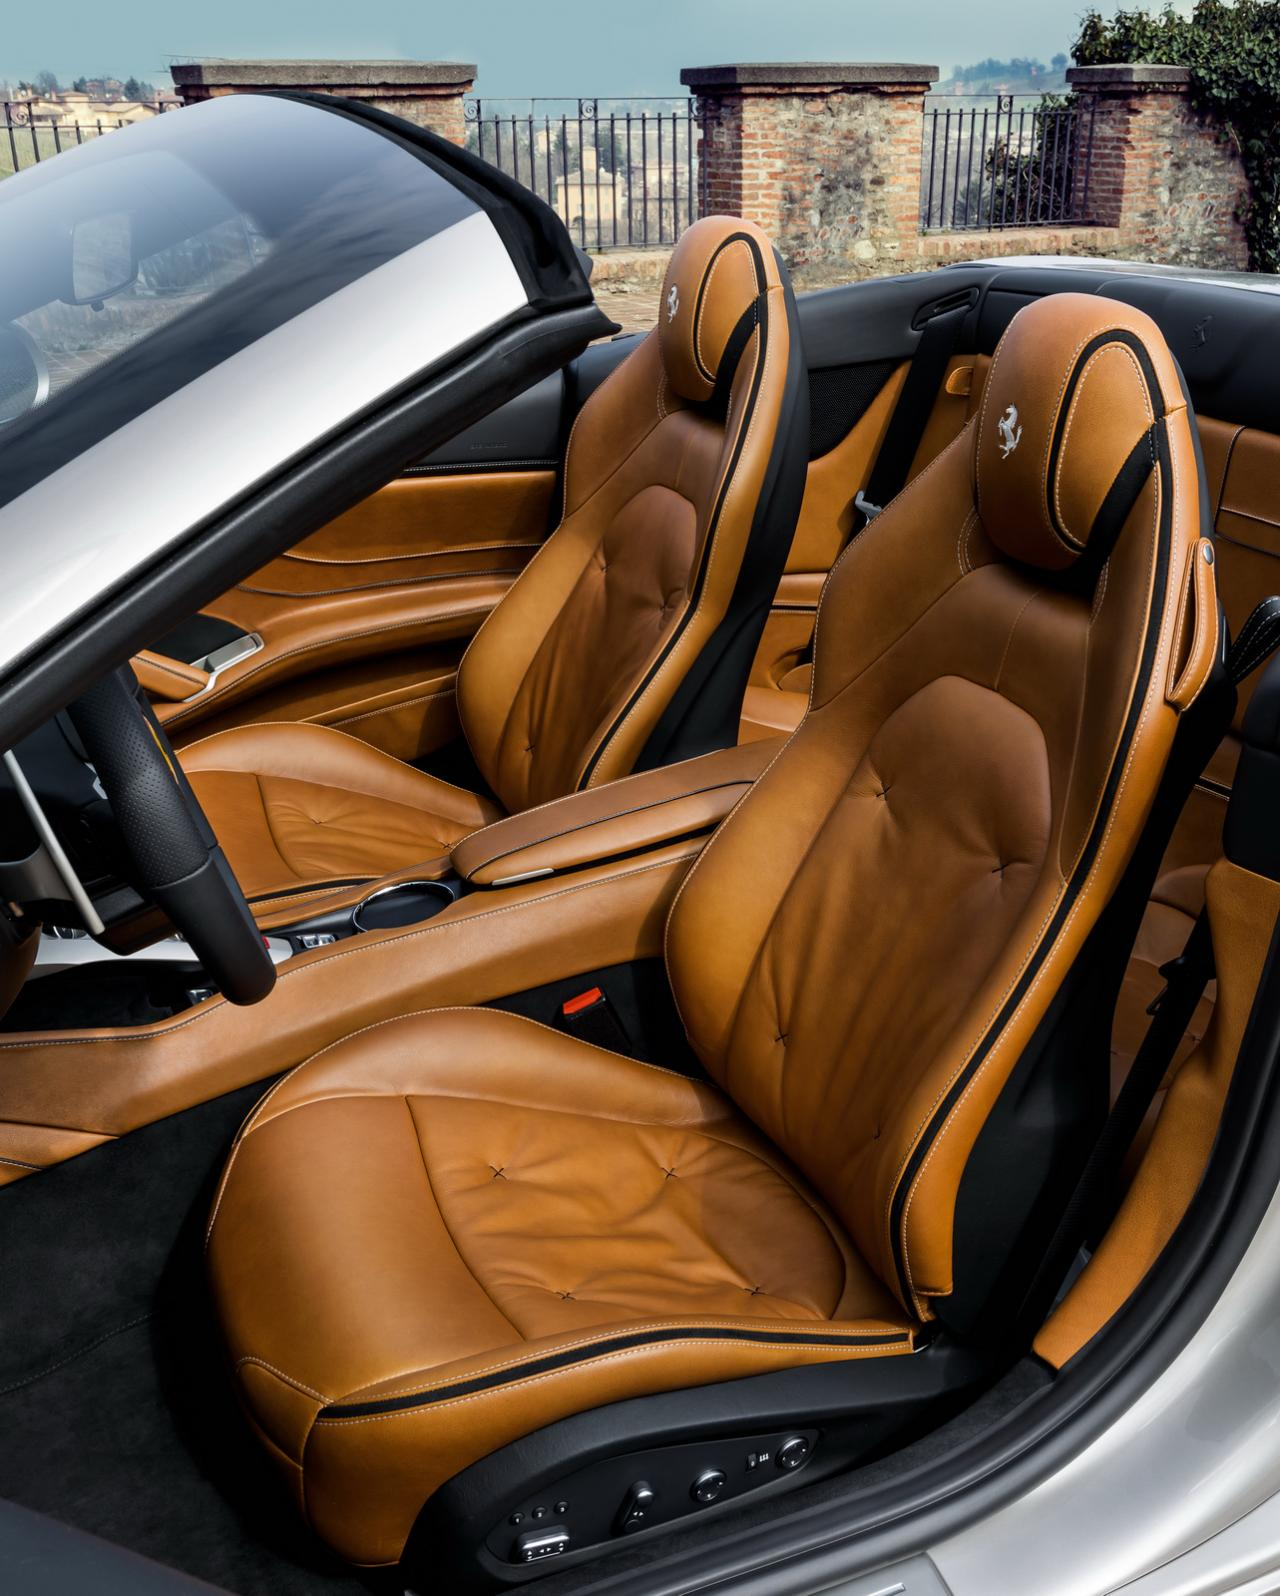 2016 Ferrari California Interior: Matured And Poised: SR Auto Audi A7